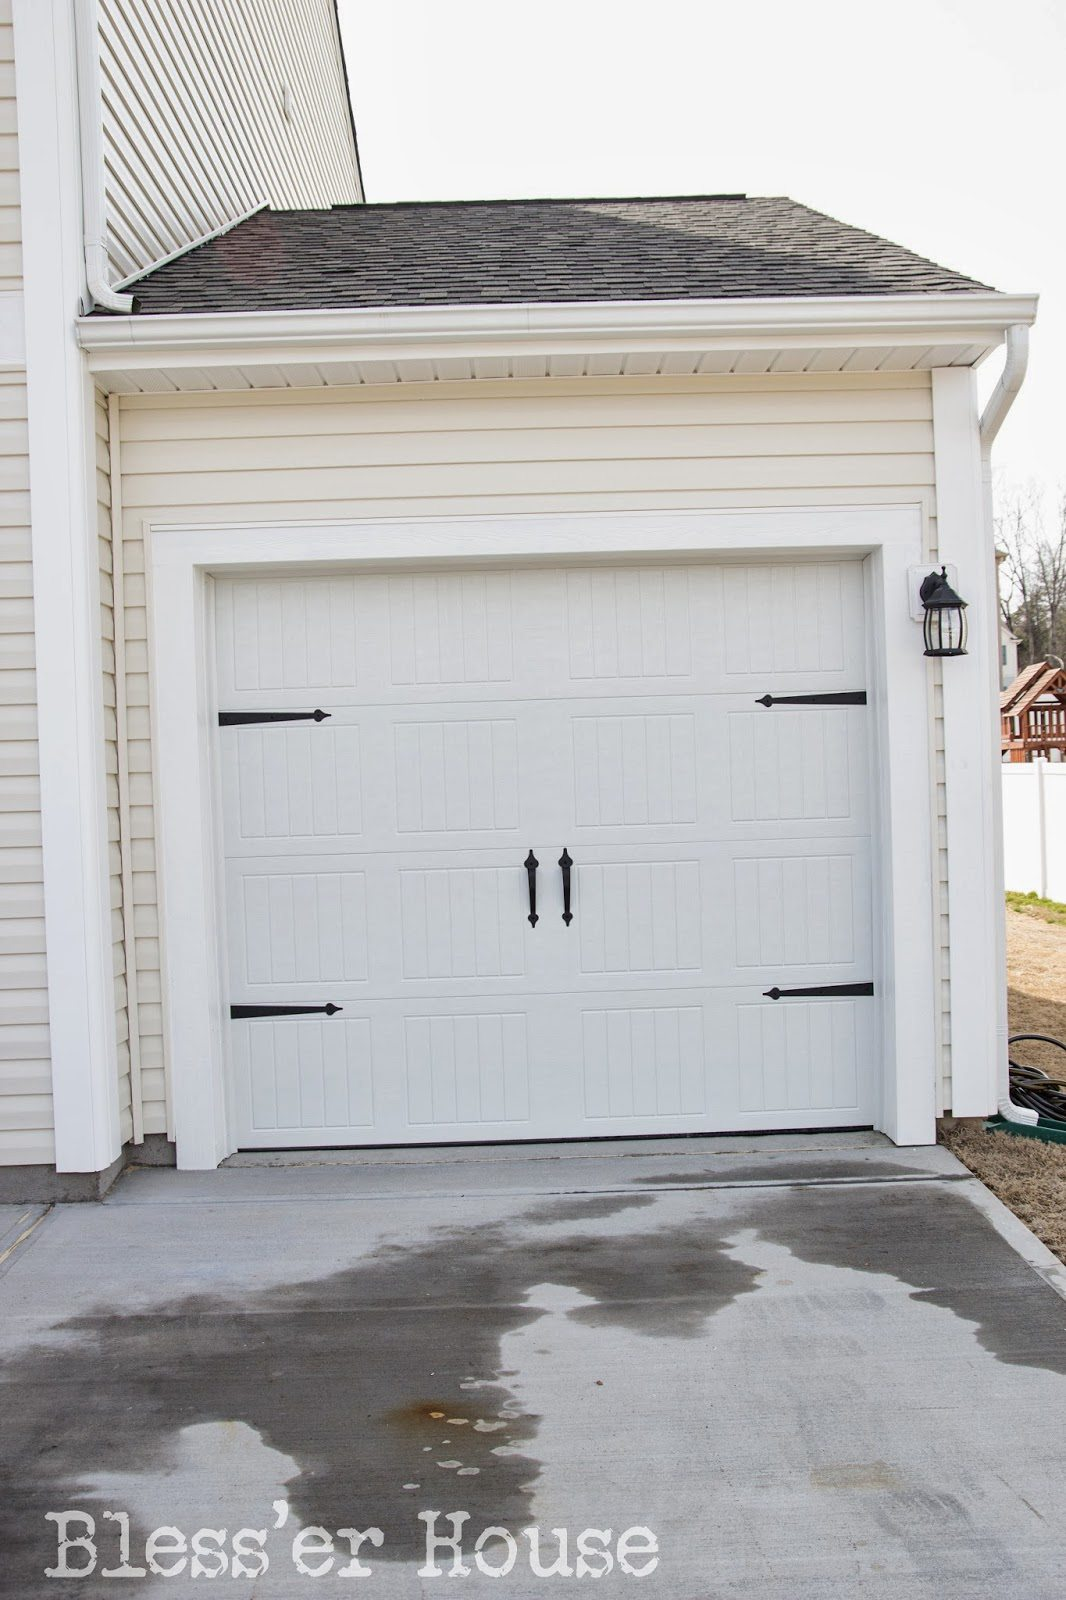 Faux Carriage Garage Doors Faux Carriage Garage Doors N Tuxstudio